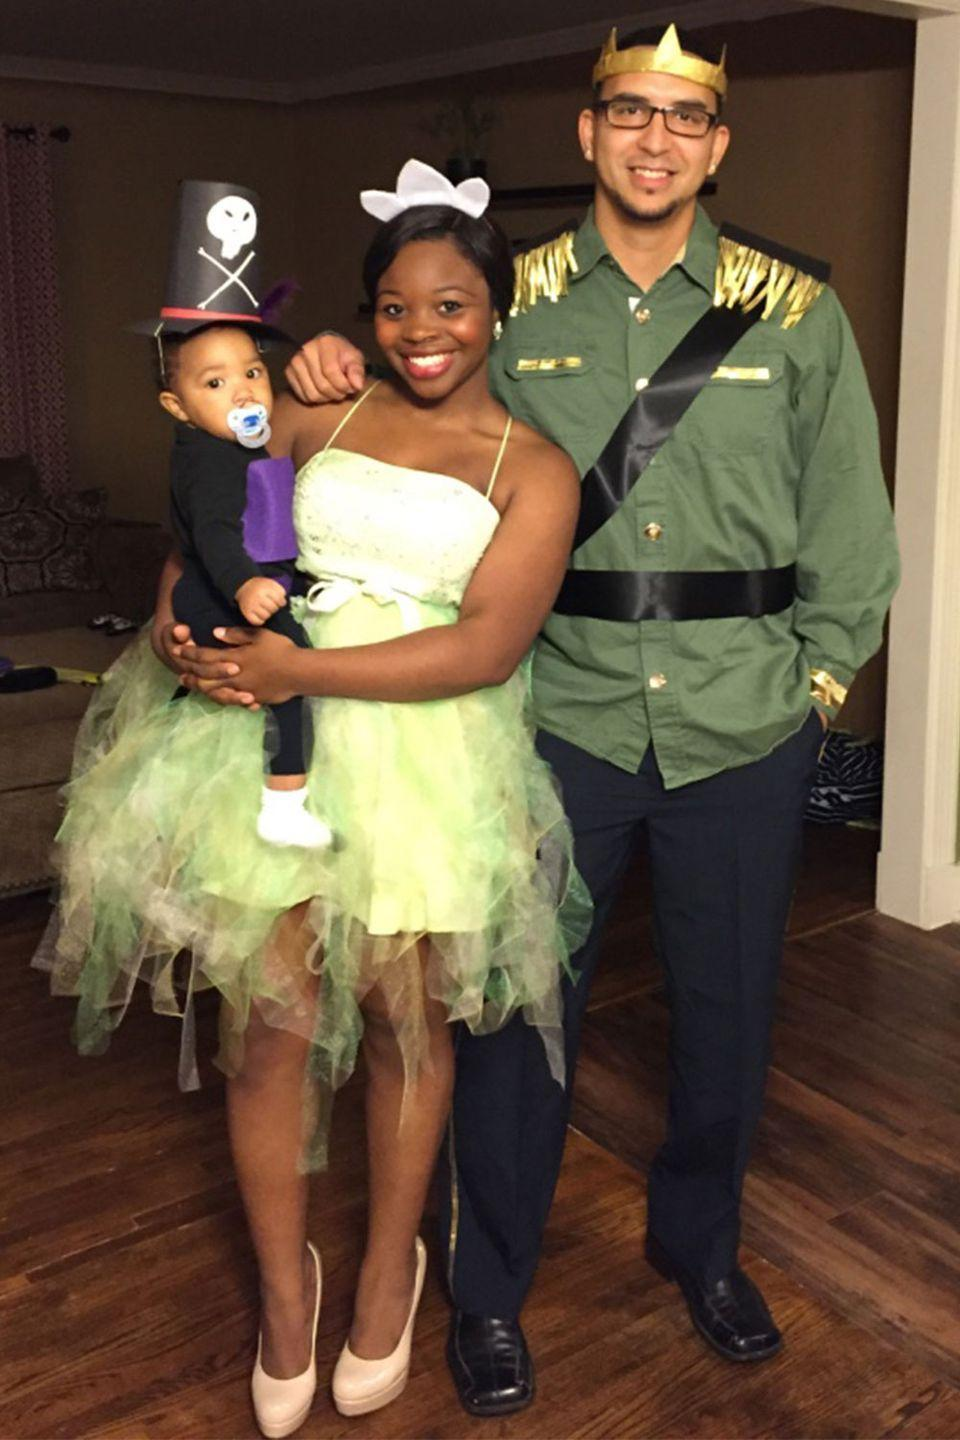 "<p>This family knocked <em><a href=""https://www.amazon.com/Tiana-Classic-Disney-Princess-Costume/dp/B07NF28VVS?tag=syn-yahoo-20&ascsubtag=%5Bartid%7C10055.g.23653854%5Bsrc%7Cyahoo-us"" rel=""nofollow noopener"" target=""_blank"" data-ylk=""slk:Princess and the Frog"" class=""link rapid-noclick-resp"">Princess and the Frog</a></em> out of the park. Cutest <a href=""https://www.amazon.com/Facilier-inspired-Necklace-princess-Disneybound/dp/B07HGGDCV8?tag=syn-yahoo-20&ascsubtag=%5Bartid%7C10055.g.23653854%5Bsrc%7Cyahoo-us"" rel=""nofollow noopener"" target=""_blank"" data-ylk=""slk:Doctor Facilier"" class=""link rapid-noclick-resp"">Doctor Facilier</a> ever! </p>"